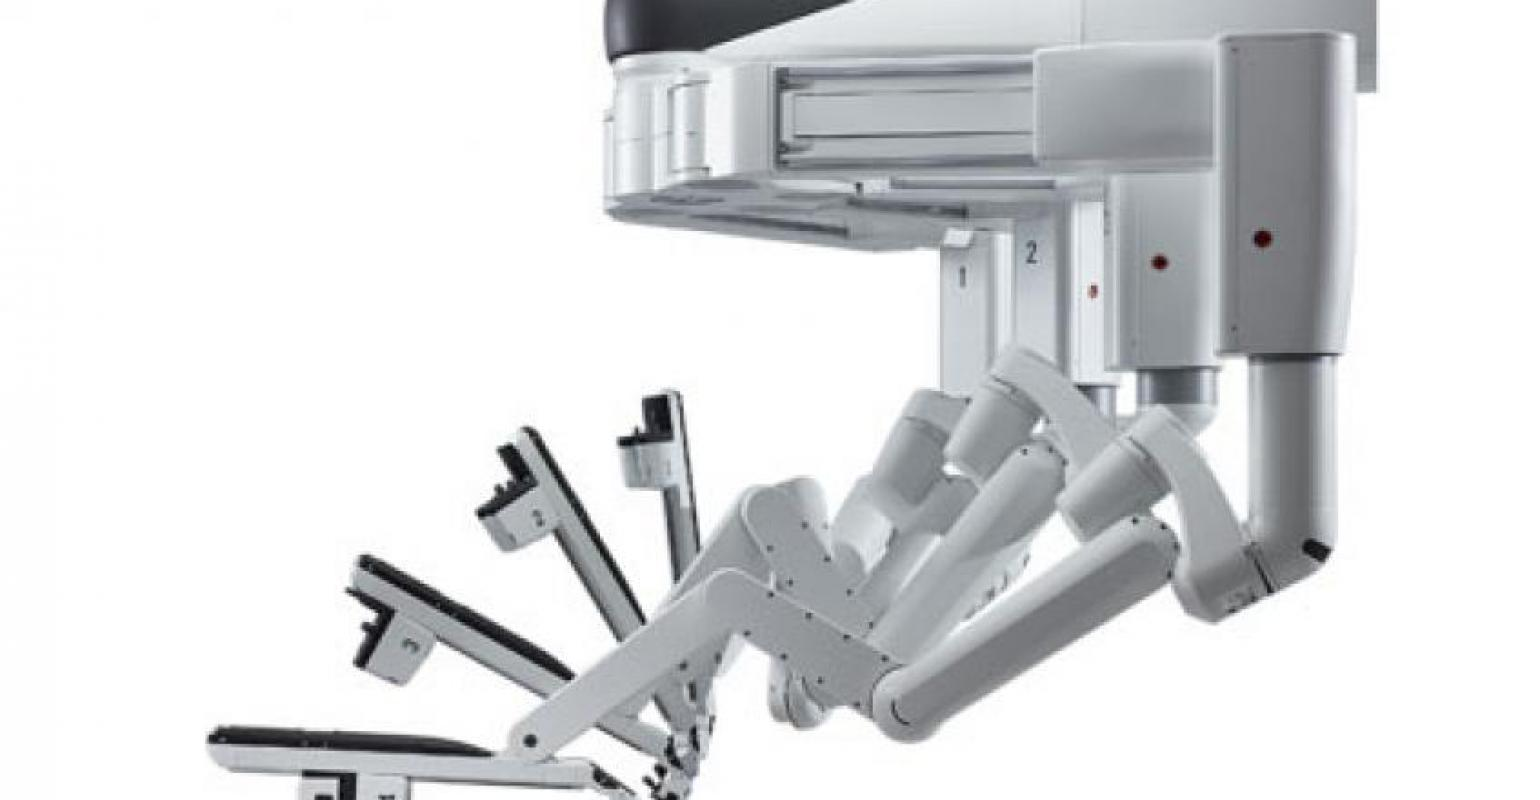 What Does the Future Hold for Robotic Surgery? | mddionline.com